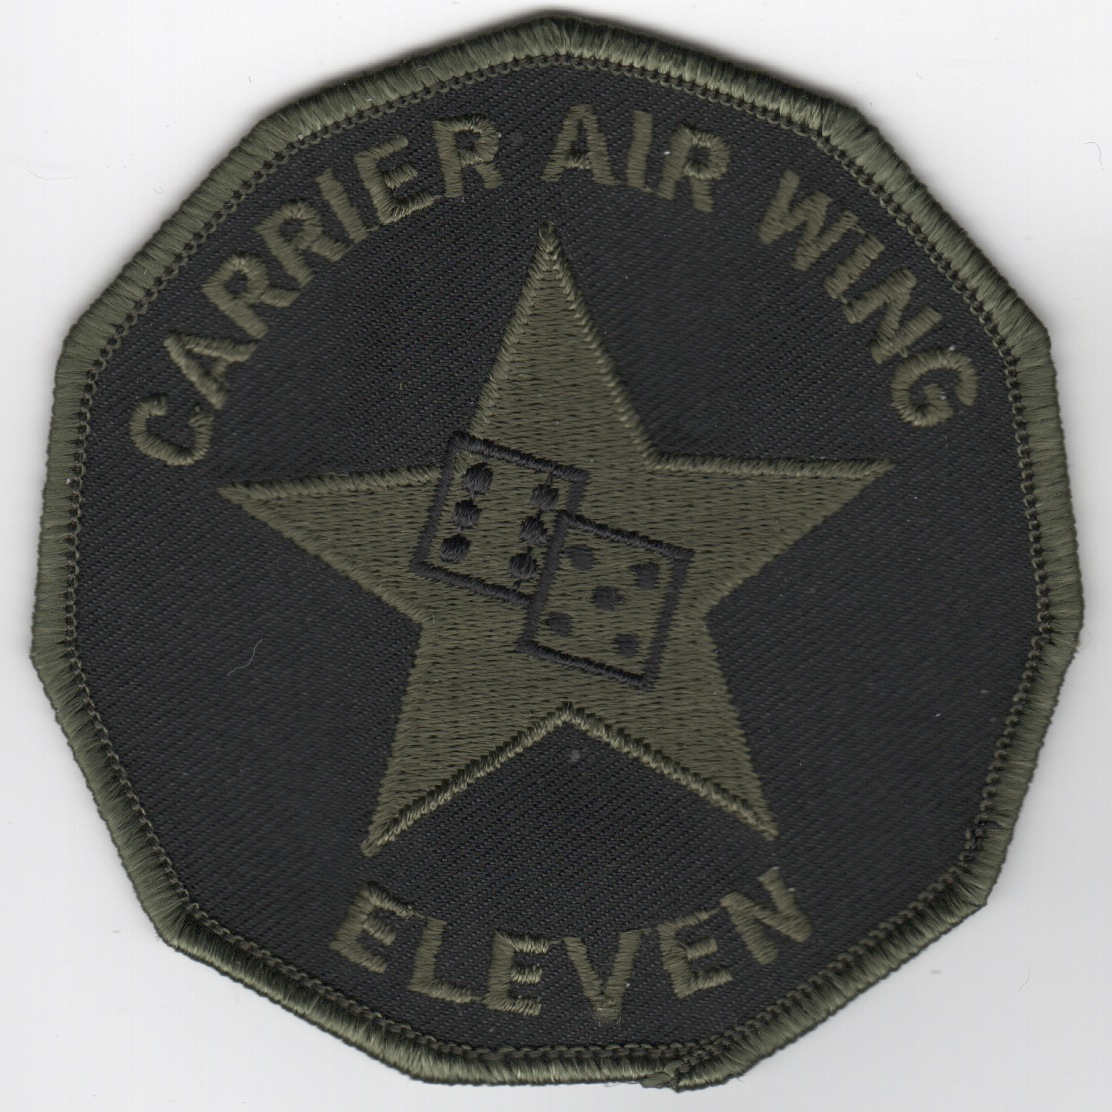 CVW-11 'Polygon' Patch (Subdued)